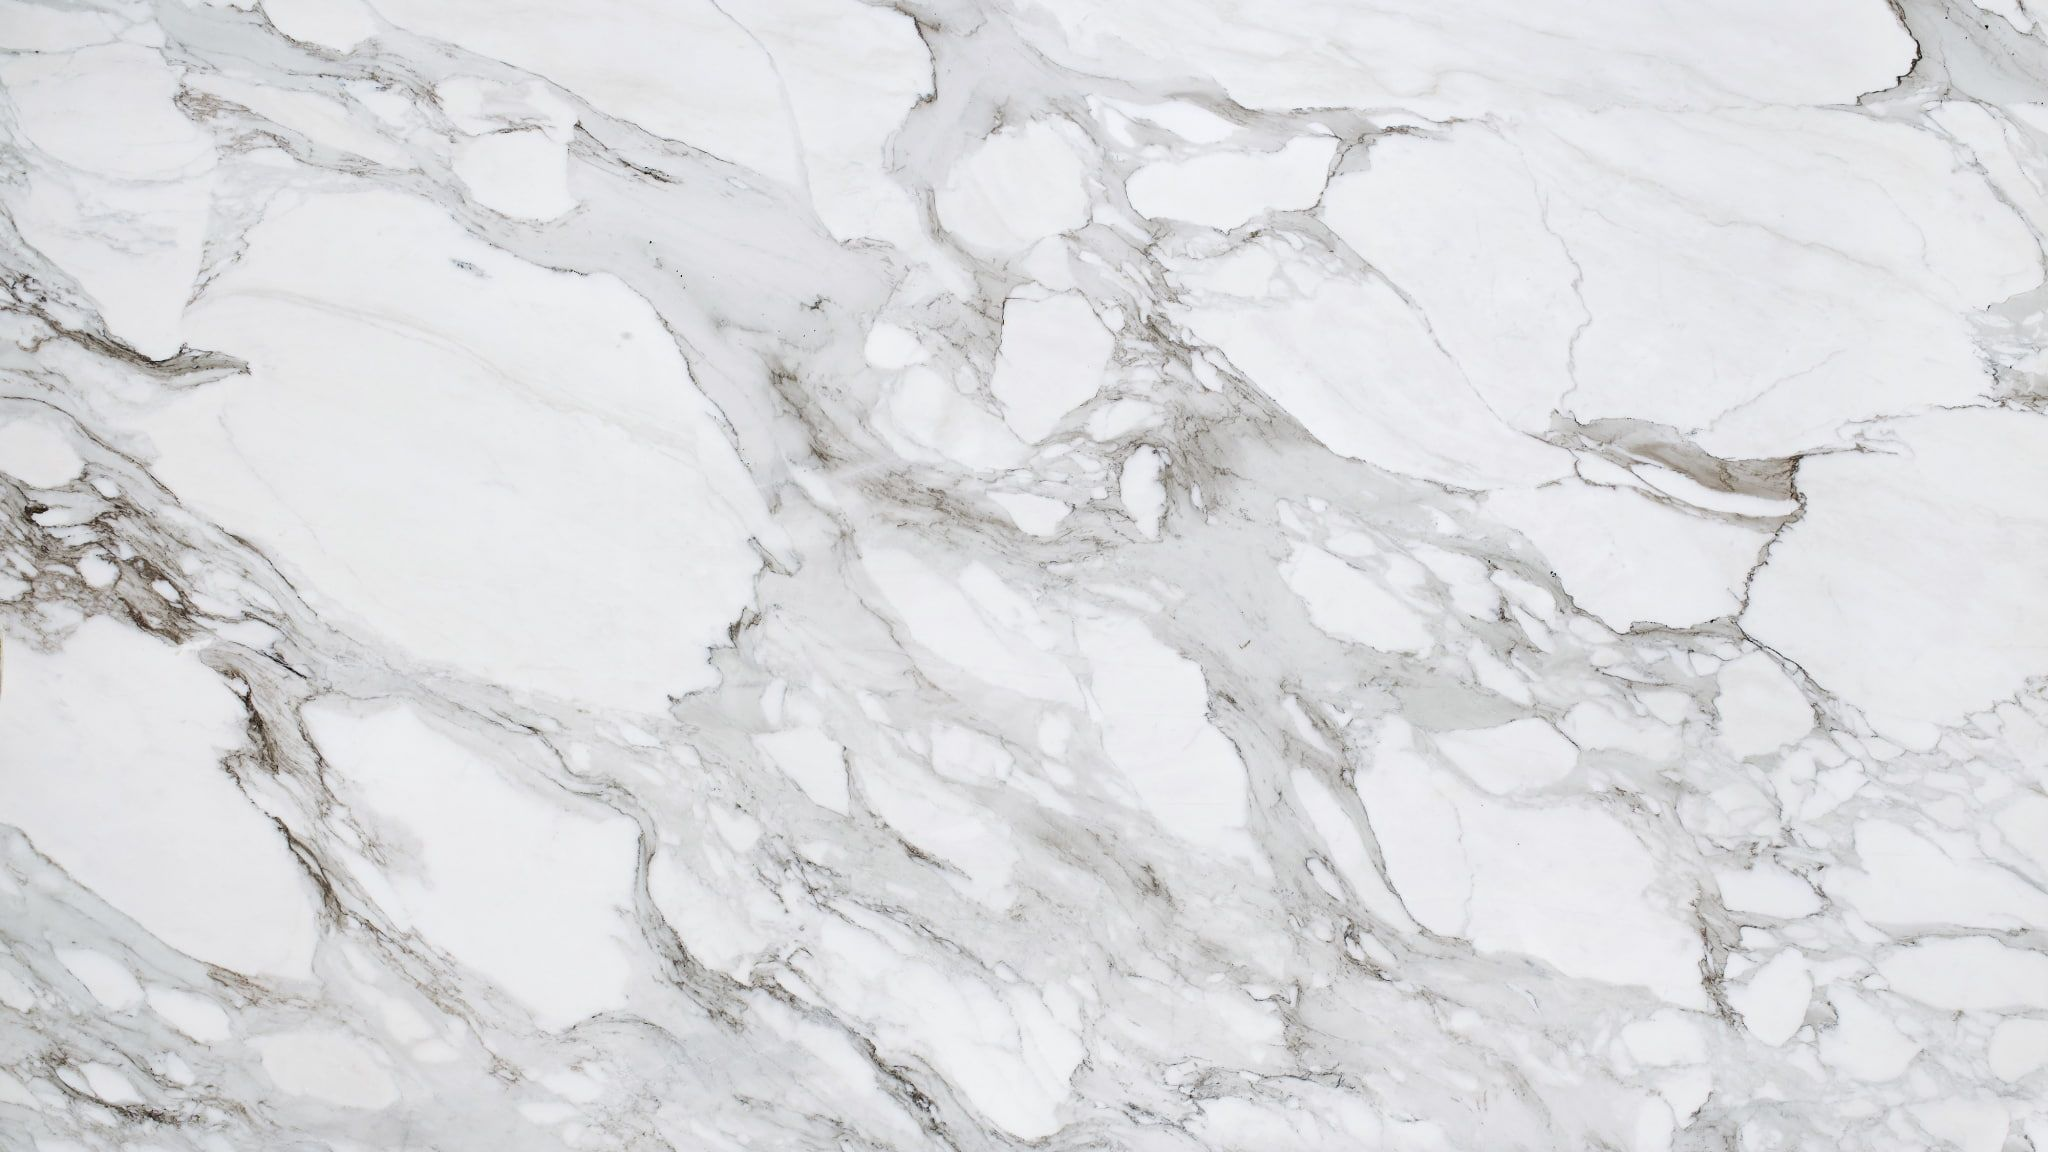 Marble Android 1080p Wallpaper Hdwallpaper Desktop In 2020 Marble Texture Seamless Marble Desktop Wallpaper Marble Texture